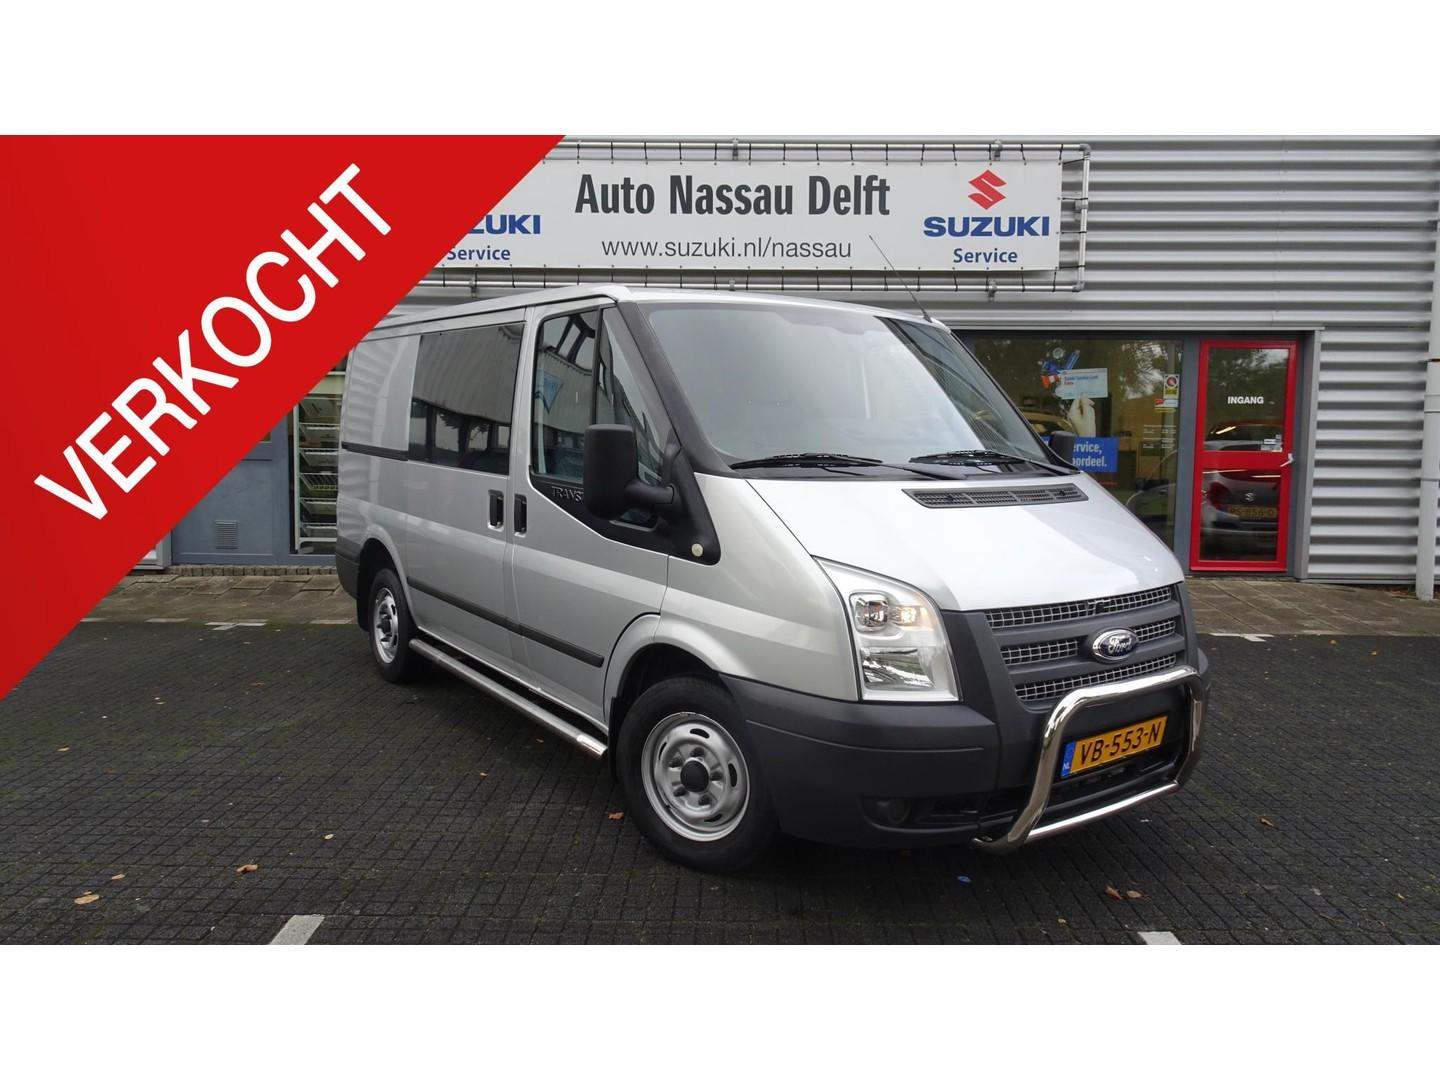 Ford Transit 260s 2.2 tdci economy edition dubbelcabine / airco